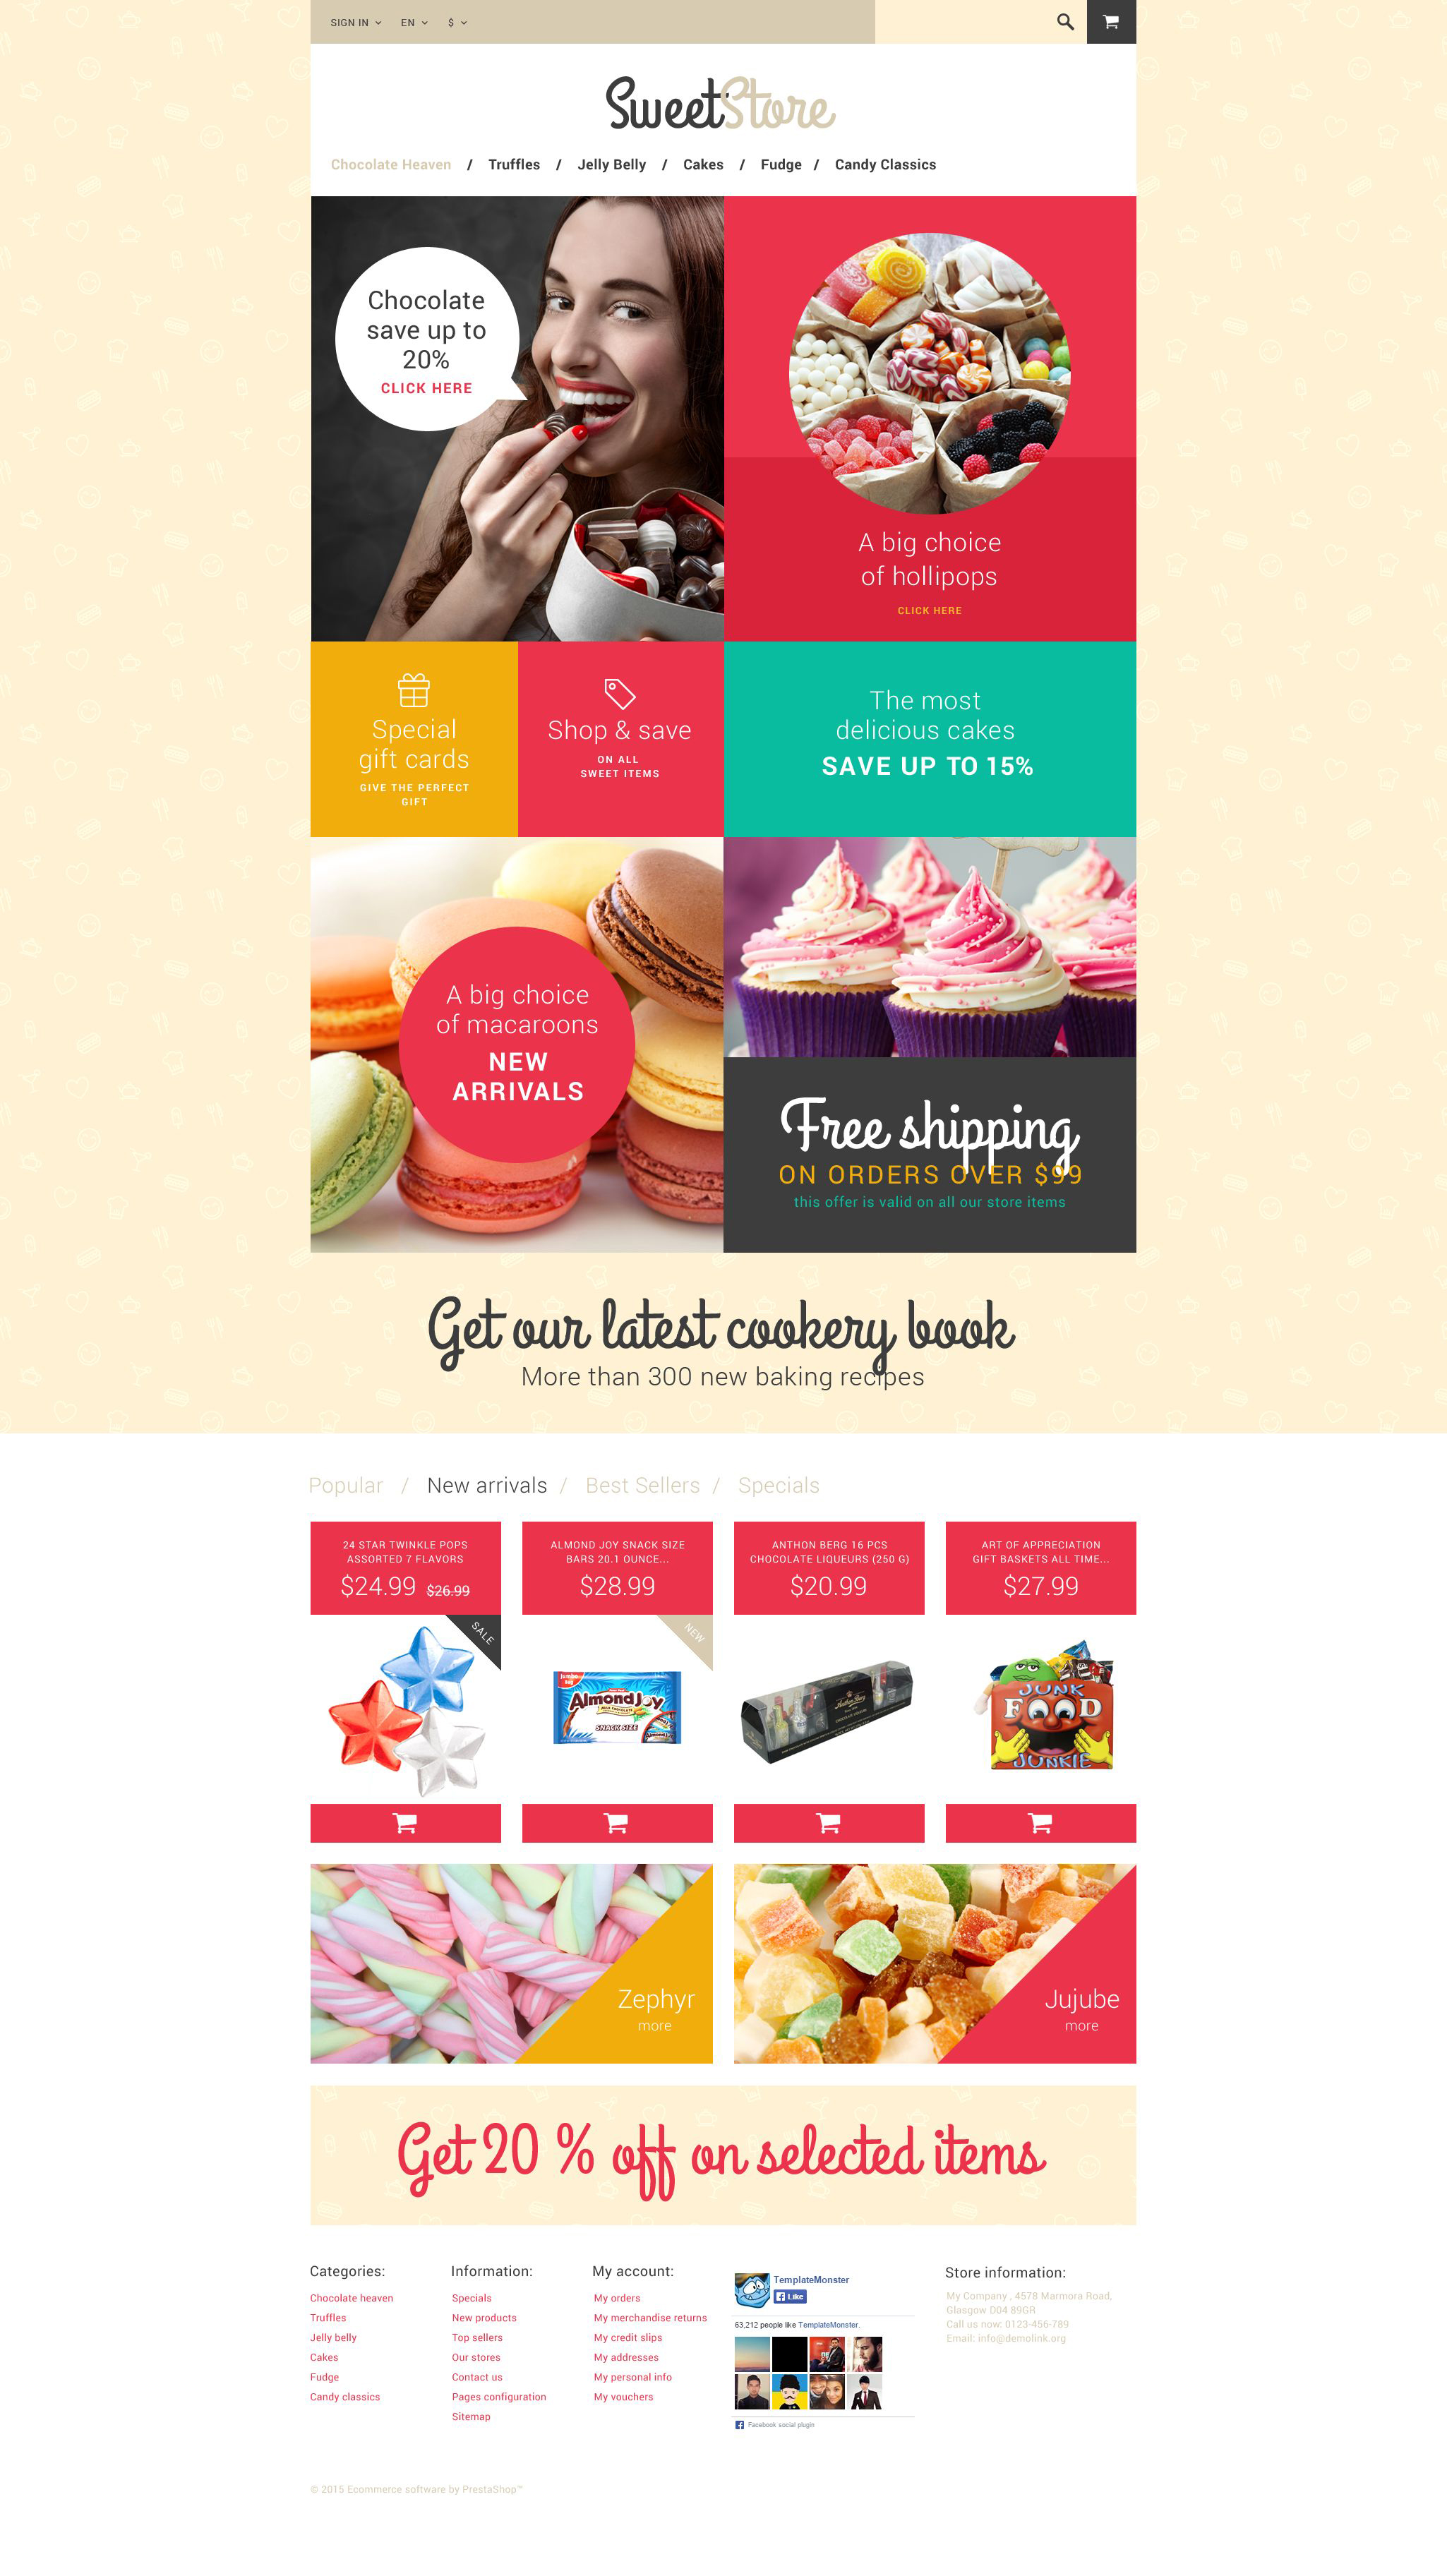 The Sweet Life PrestaShop Design 54553, one of the best PrestaShop themes of its kind (food & drink, most popular), also known as sweet life PrestaShop template, sweets PrestaShop template, house PrestaShop template, candy store PrestaShop template, chocolate PrestaShop template, candy PrestaShop template, nuts PrestaShop template, raisin PrestaShop template, products PrestaShop template, services PrestaShop template, order PrestaShop template, boxed PrestaShop template, chocolate PrestaShop template, assortment PrestaShop template, butter PrestaShop template, cream PrestaShop template, fruits PrestaShop template, gourmet PrestaShop template, pretzel PrestaShop template, truffles PrestaShop template, sugar PrestaShop template, free gummy PrestaShop template, chocolate PrestaShop template, bar PrestaShop template, dark milk PrestaShop template, white hot chocolate PrestaShop template, peanut PrestaShop template, creme PrestaShop template, brulee PrestaShop template, ginger PrestaShop template, pistachio and related with sweet life, sweets, house, candy store, chocolate, candy, nuts, raisin, products, services, order, boxed, chocolate, assortment, butter, cream, fruits, gourmet, pretzel, truffles, sugar, free gummy, chocolate, bar, dark milk, white hot chocolate, peanut, creme, brulee, ginger, pistachio, etc.